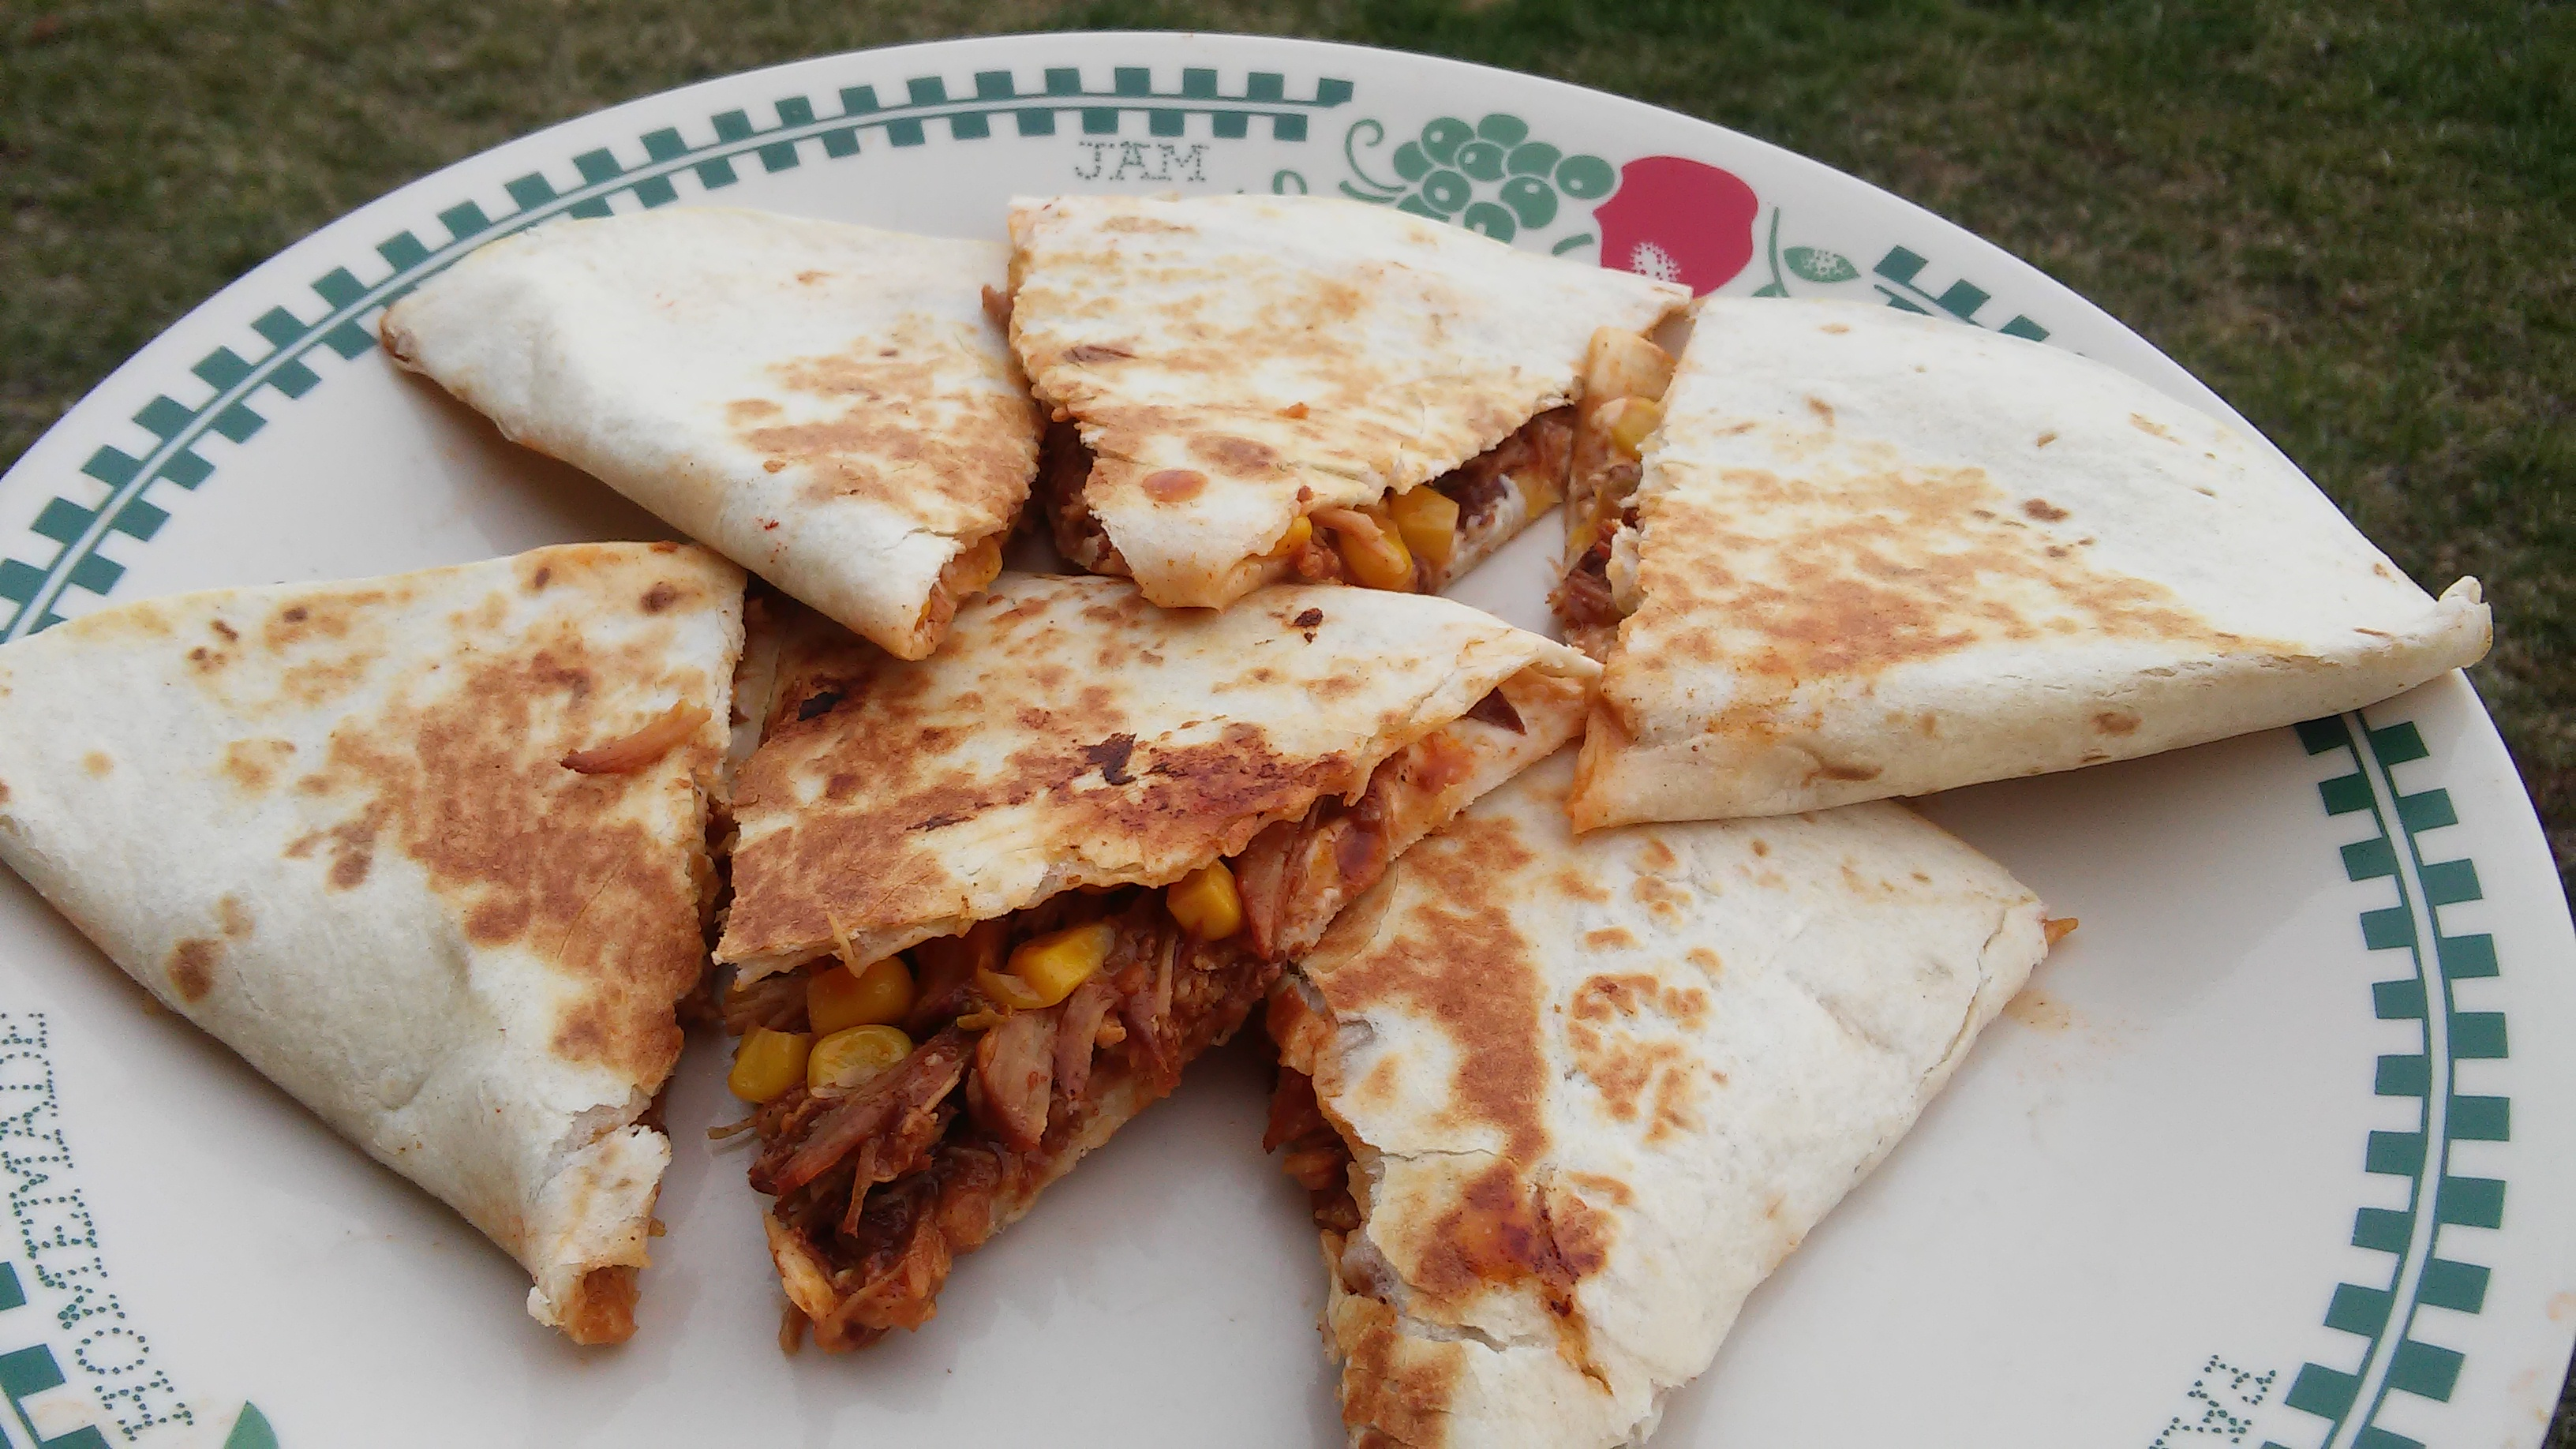 Creamy Jalapeno and Pulled Pork Quesadilla